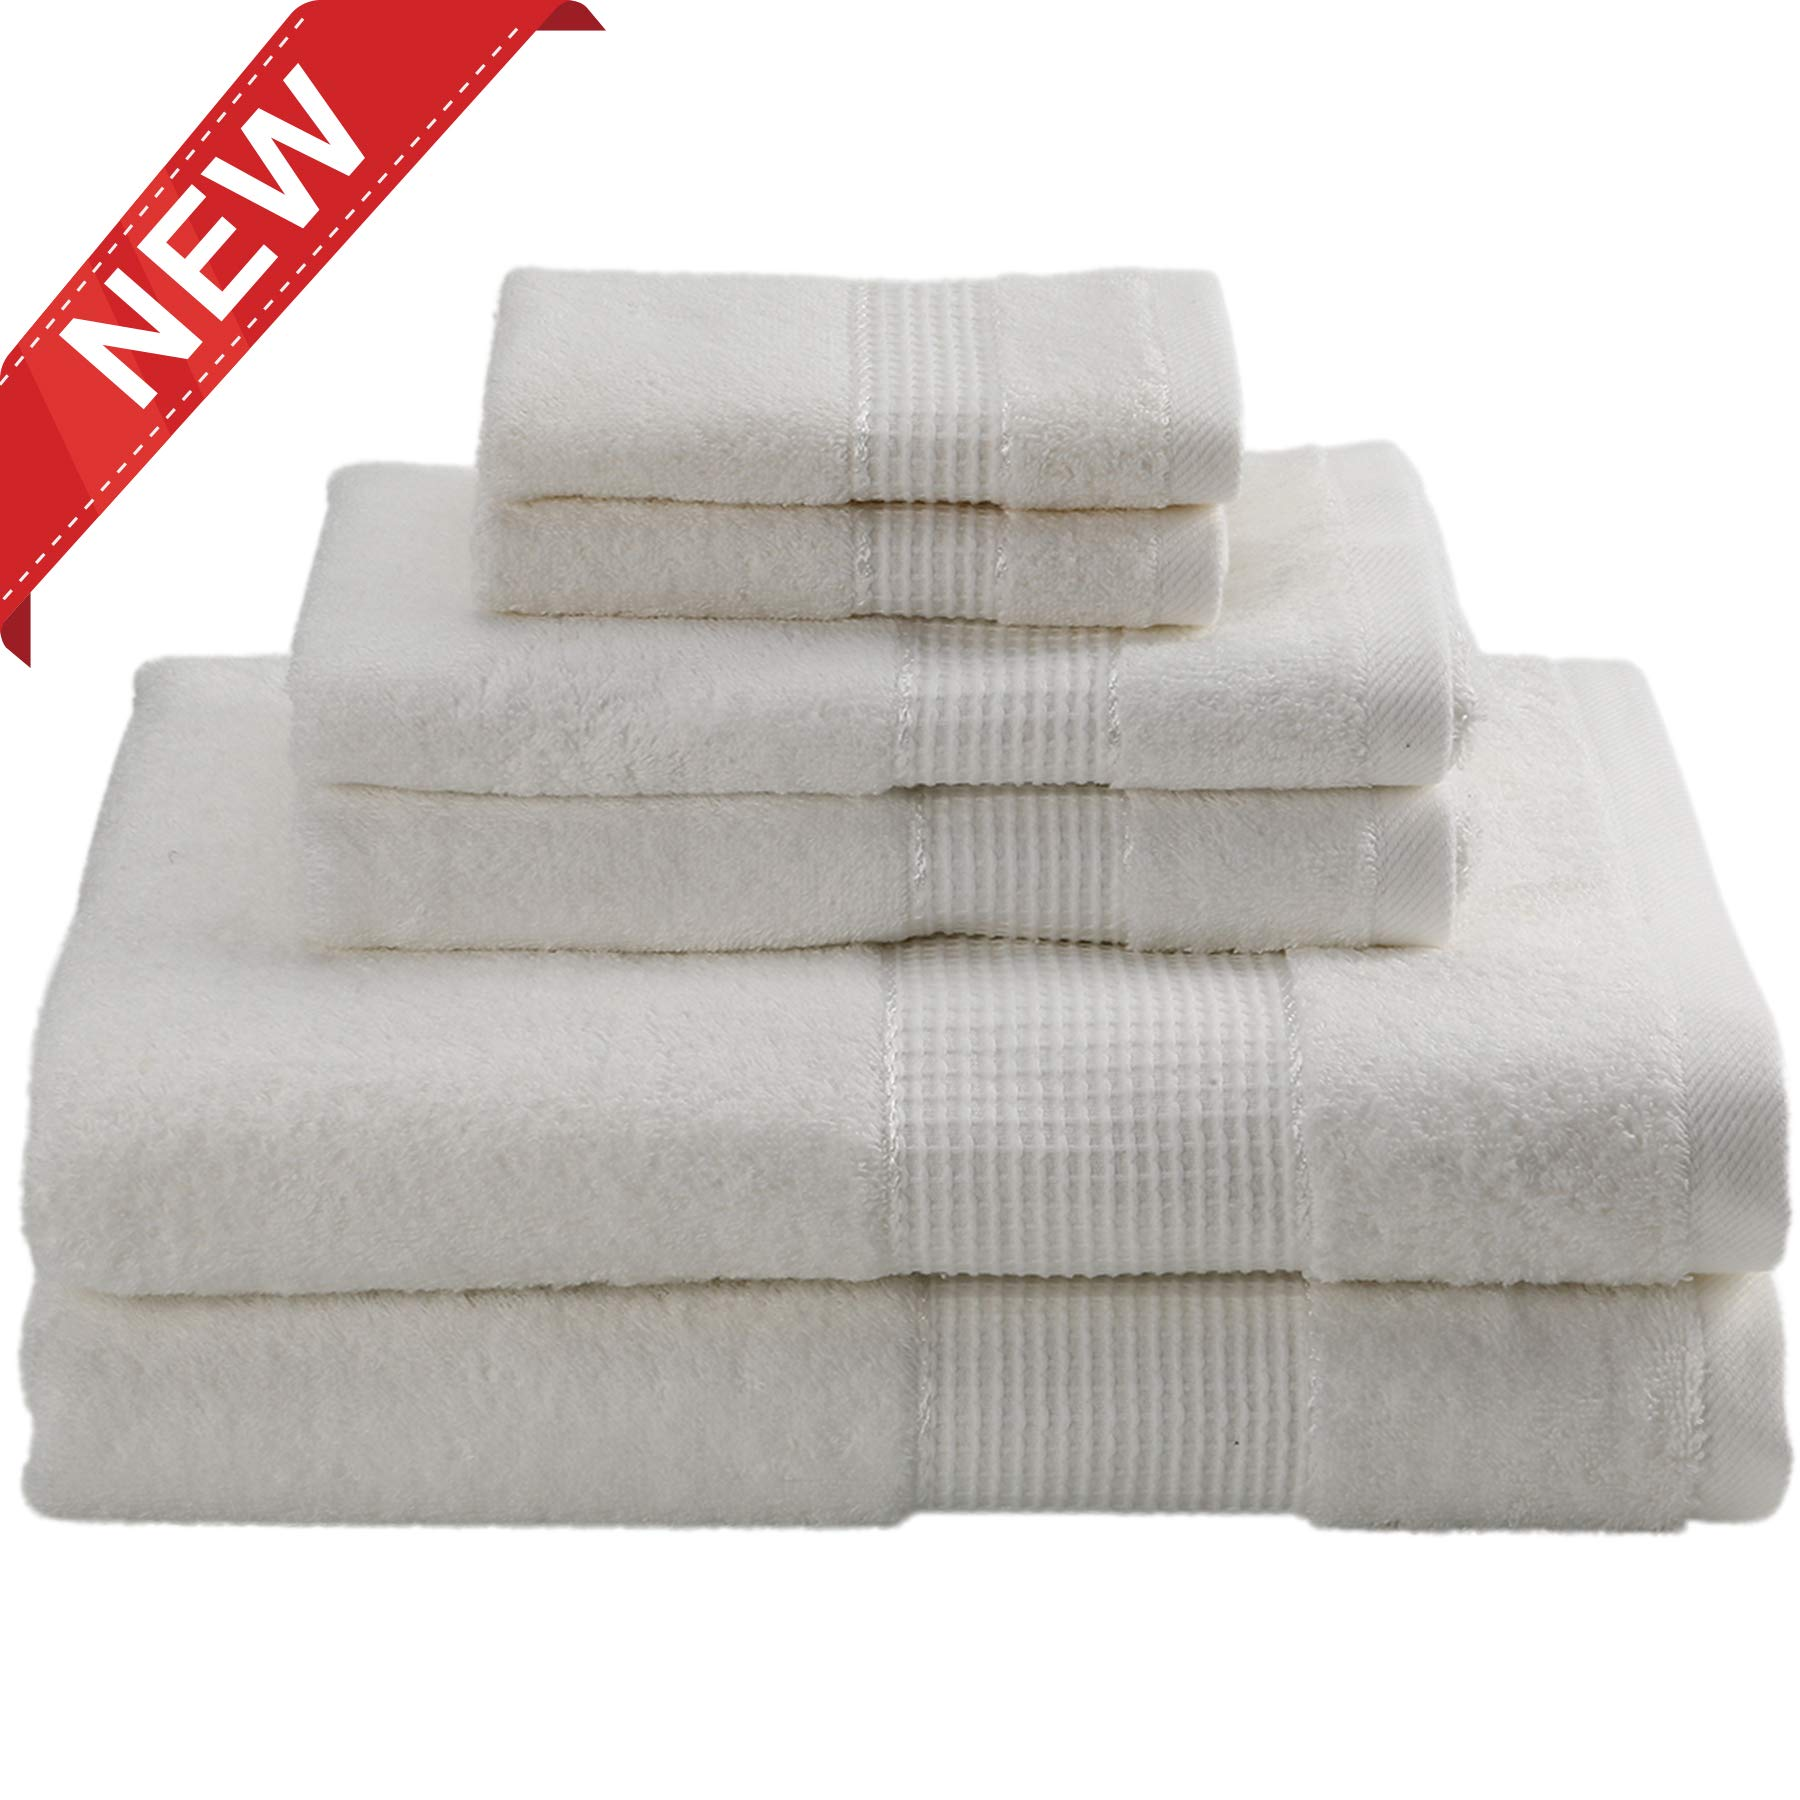 DOZZZ 6 Pack Egyptian Cotton Towel Set - 2 Bath Towels 2 Hand Towels 2 Washcloths for Bathroom Face Gym and Spa with Premium Soft and Absorbent Hotel Quality